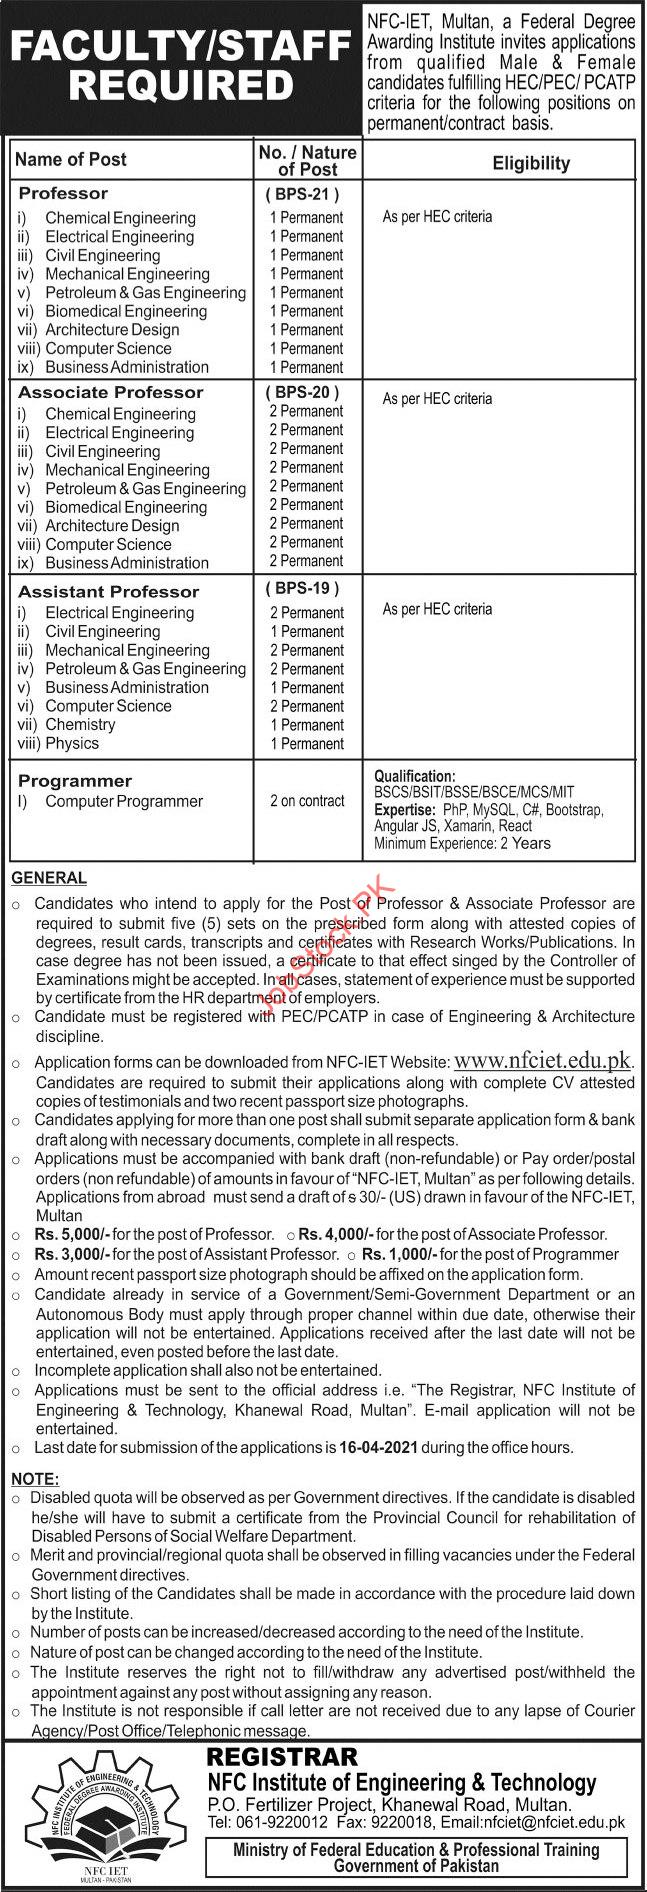 Nfc Institute Of Engineering & Technology Multan Jobs 2021